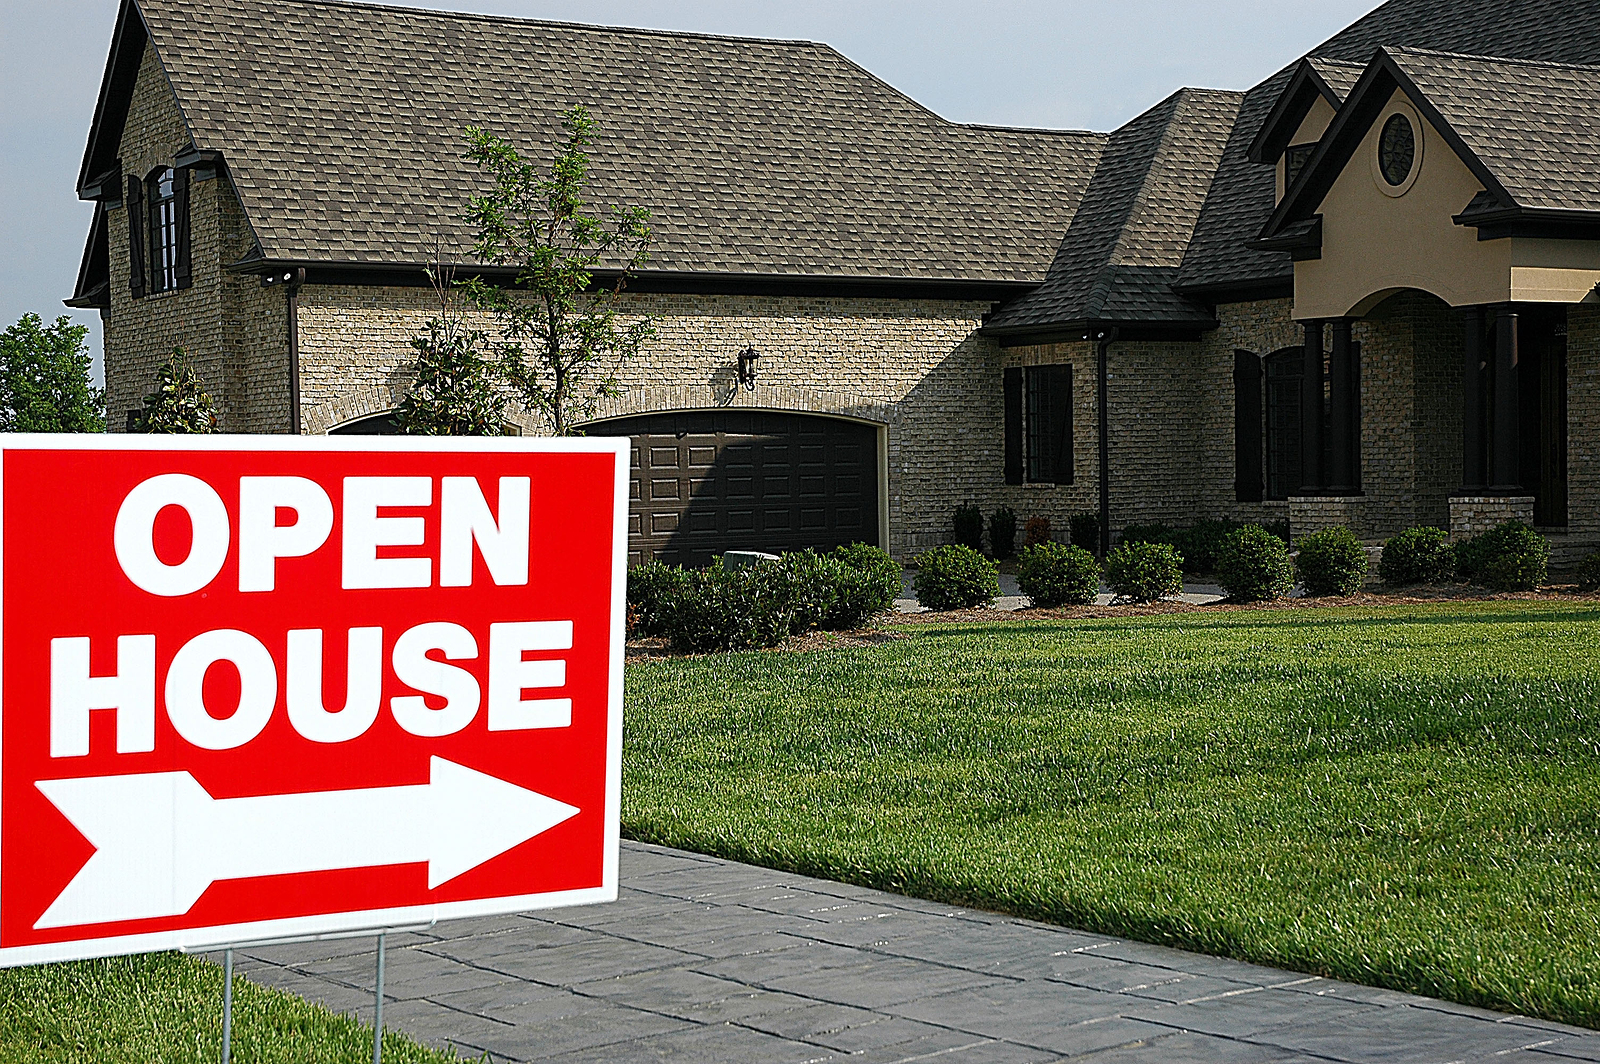 house with sign for open house